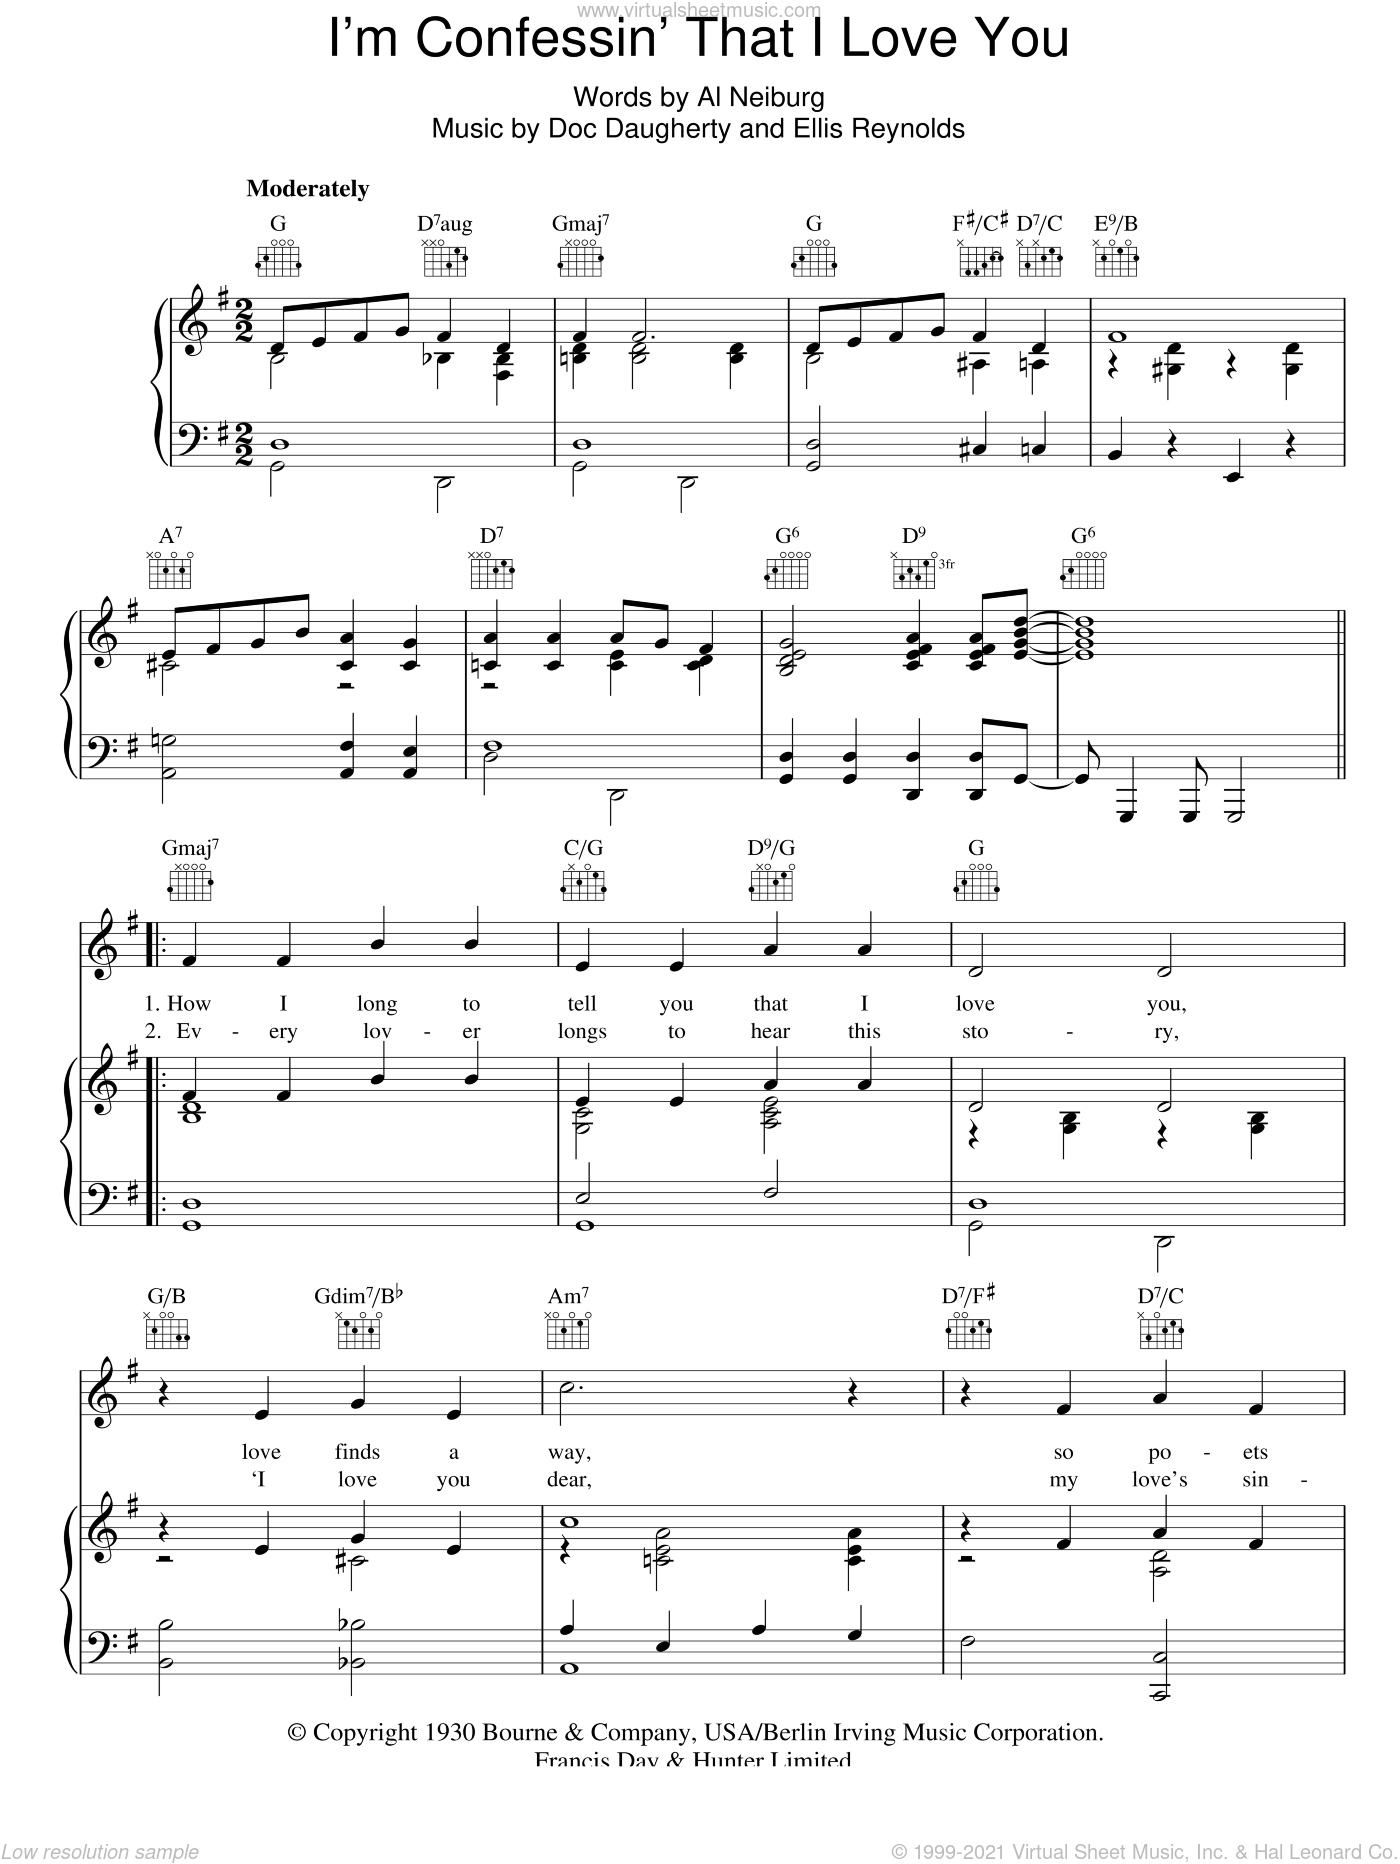 I'm Confessin' That I Love You sheet music for voice, piano or guitar by Perry Como, Doc Daugherty and Ellis Reynolds, intermediate skill level